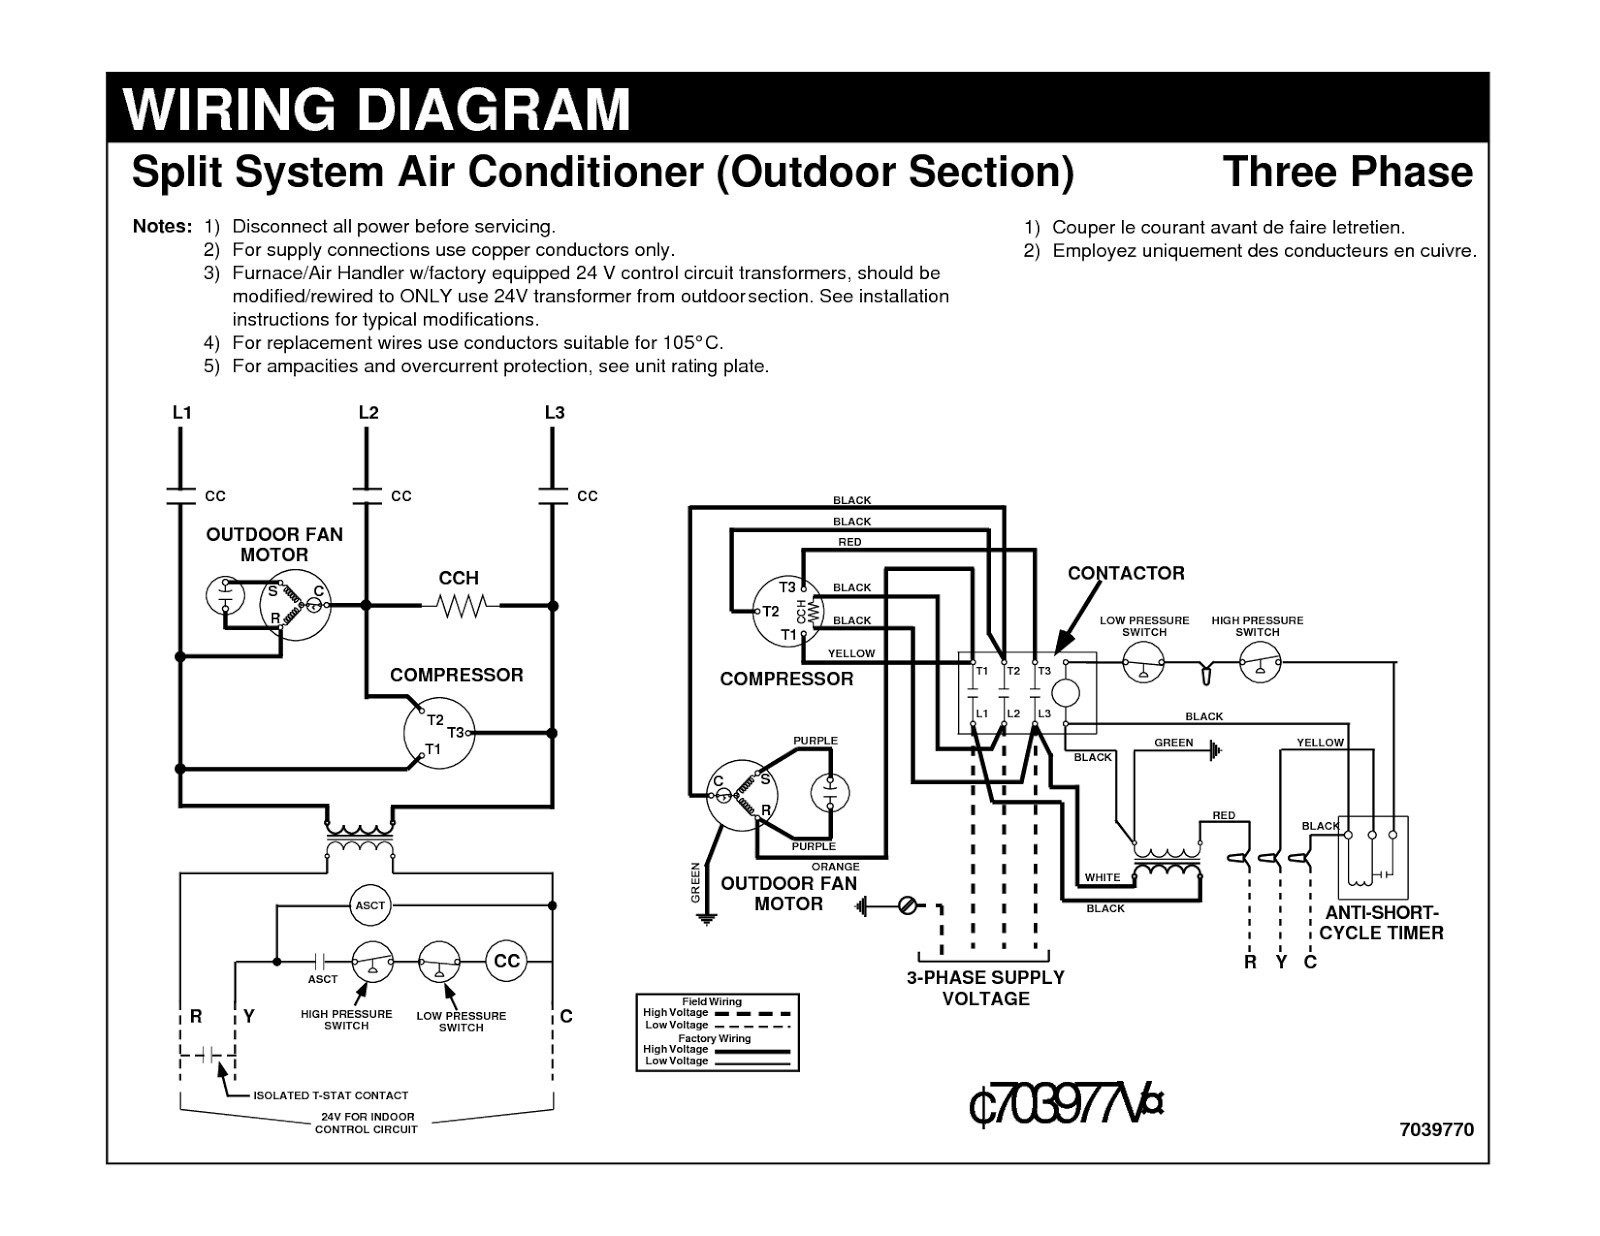 Wiring Diagram For Central Ac Unit New Best Air Conditioner Picture - Central A C Wiring Diagram